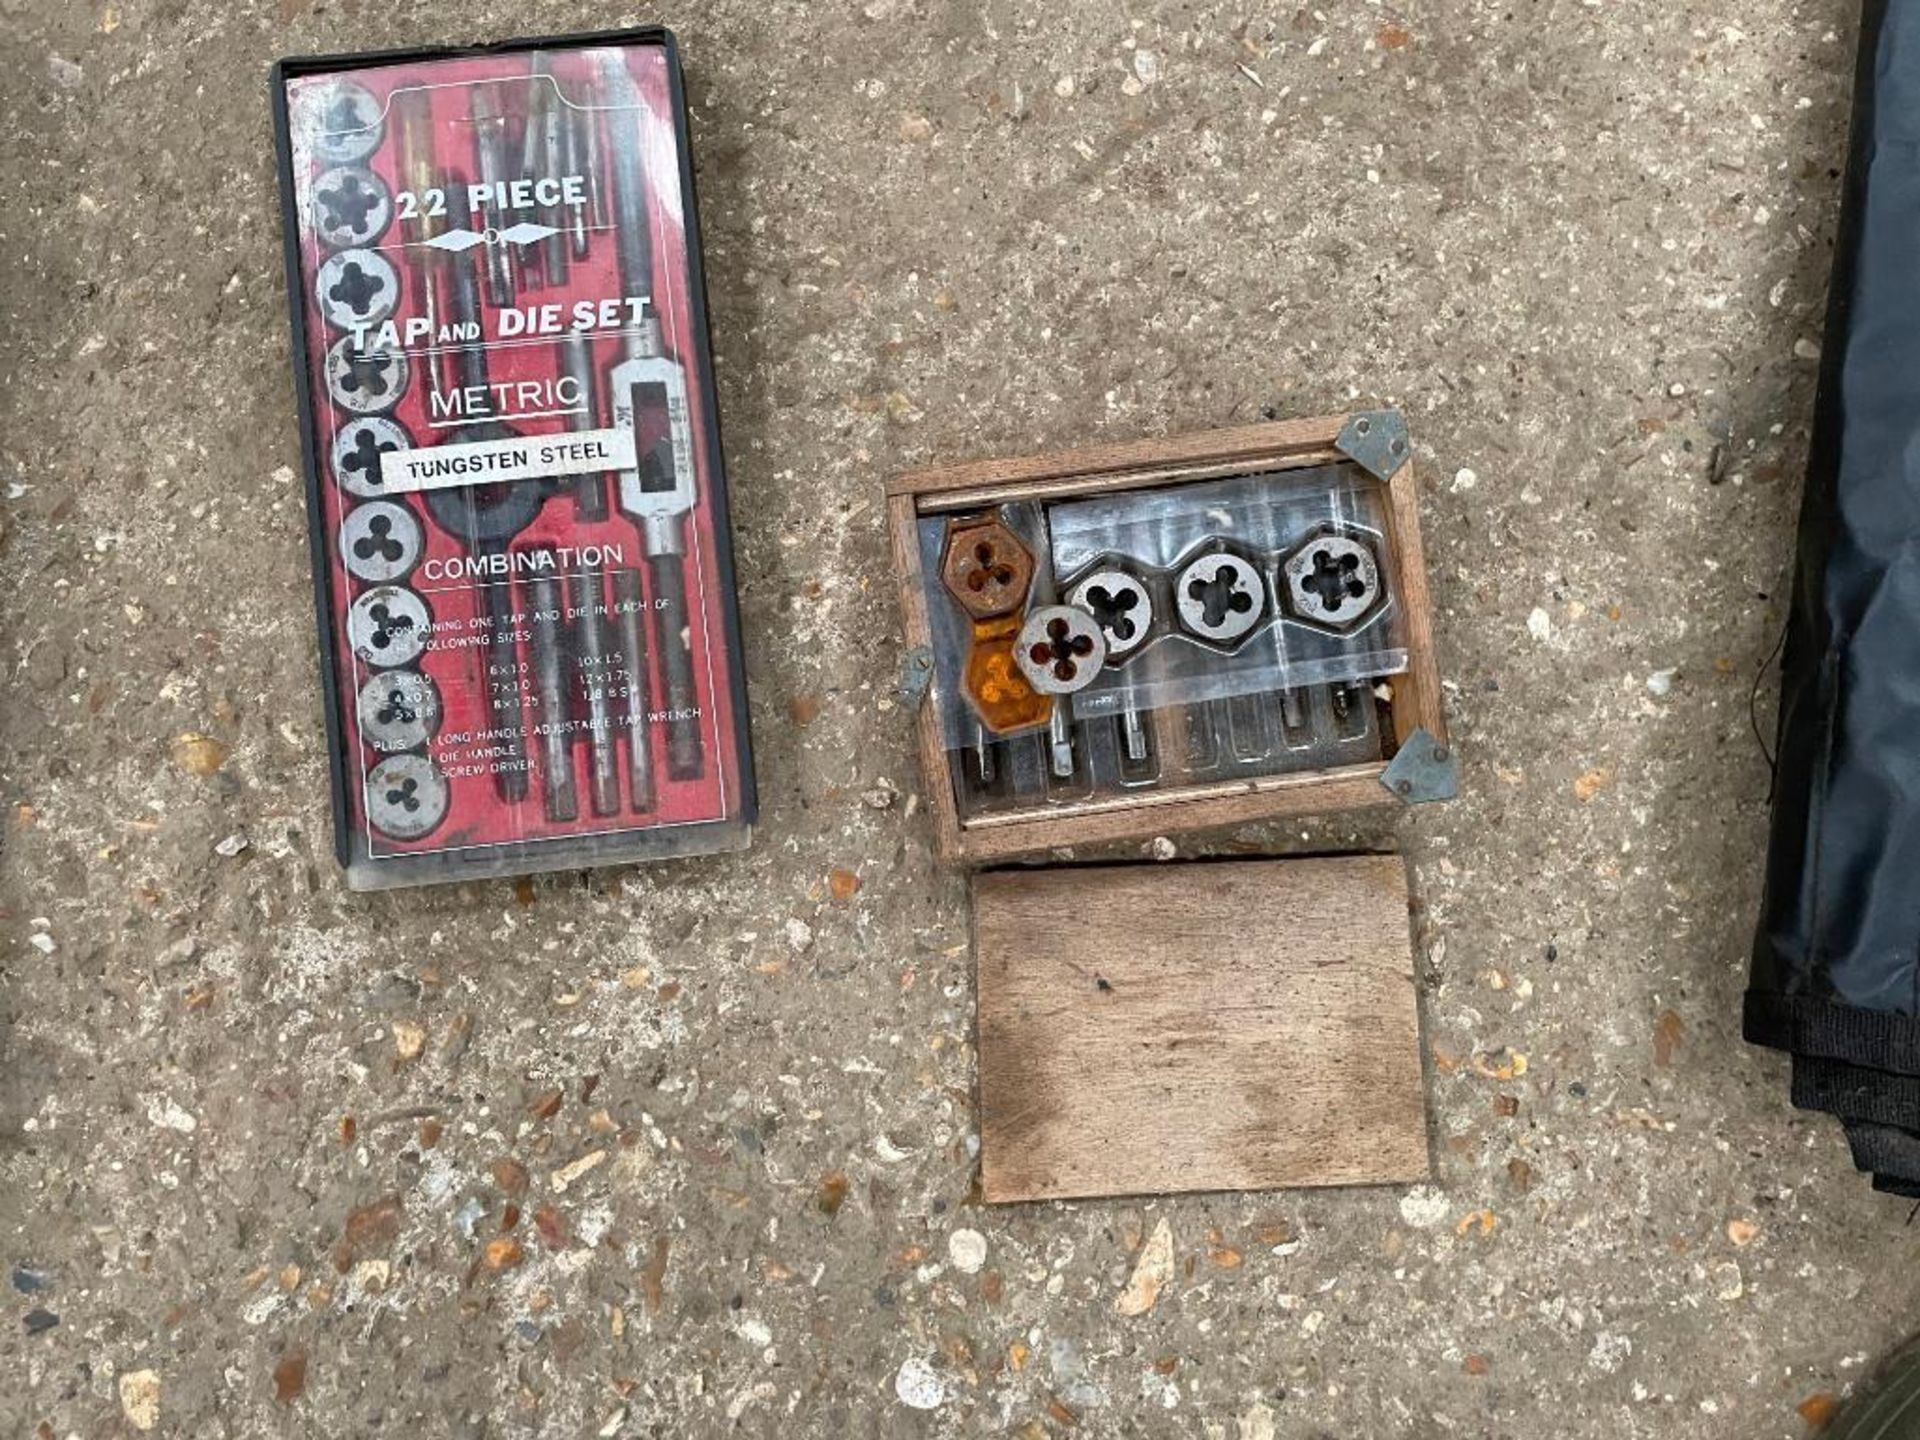 22 piece tap and die set (metric) with other taps and dies - Image 2 of 3